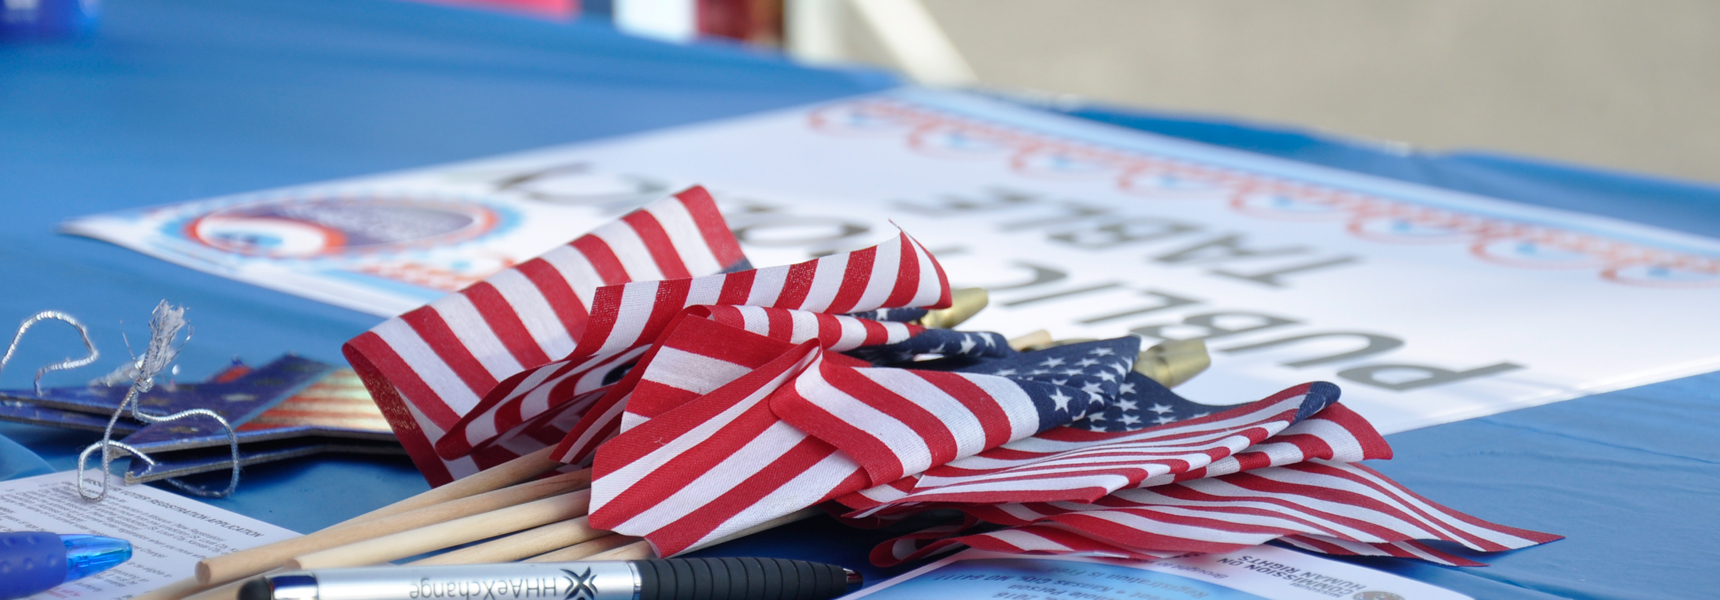 Flags on a table in a voting area